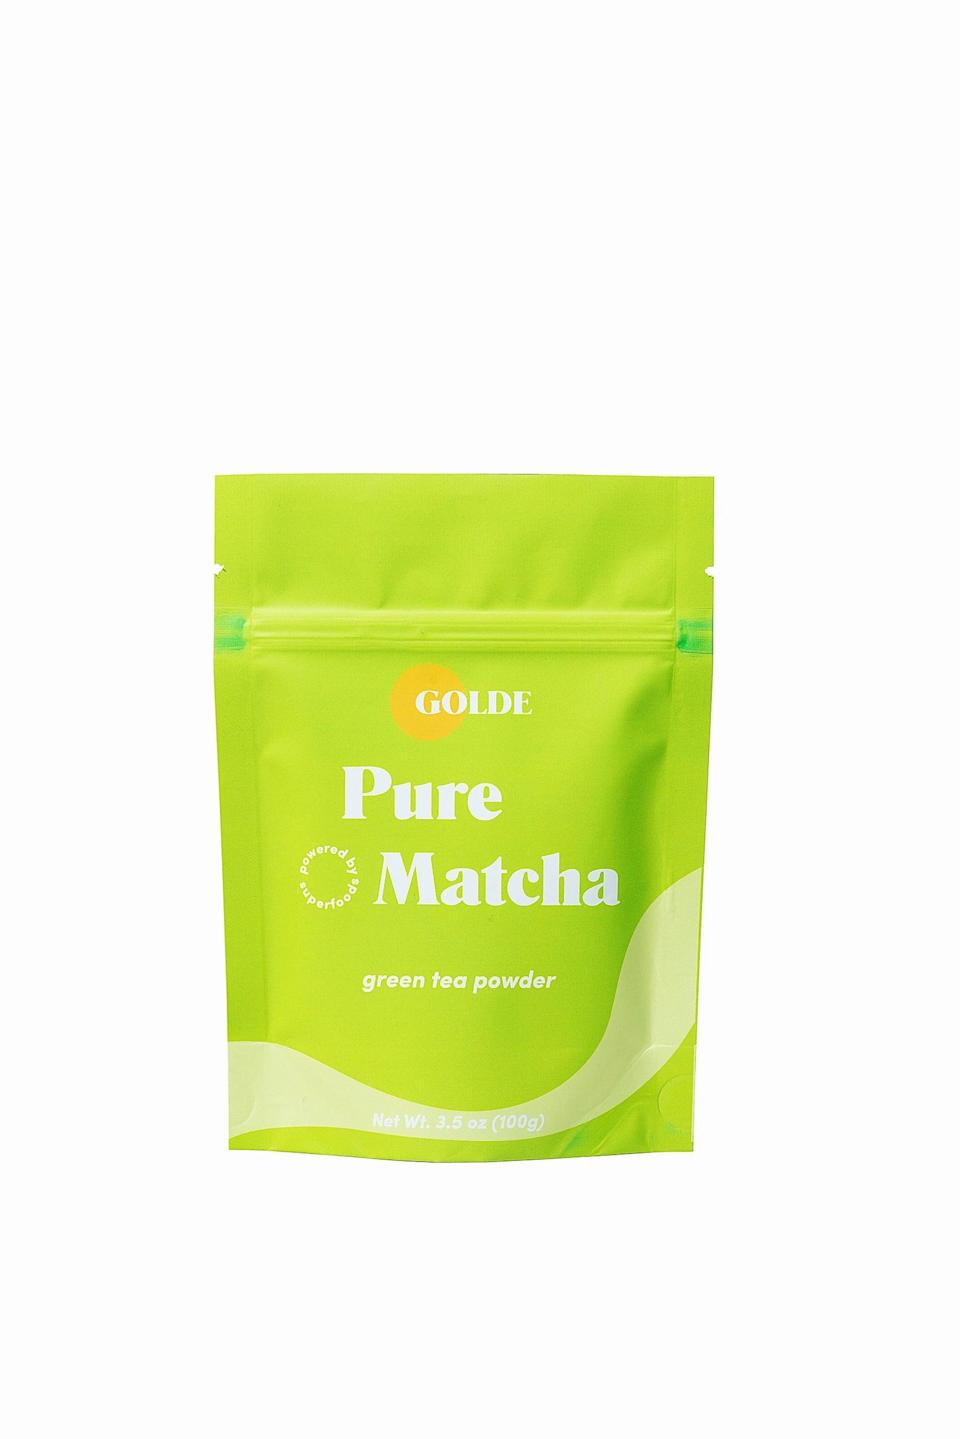 """<p>If you love caffeine but want to try something different from coffee, give matcha a go. This <span>Golde Pure Matcha 100</span> ($42) is a great gift, and it tastes delicious, no matter <a href=""""https://www.popsugar.com/fitness/How-Make-Matcha-Latte-46457717"""" class=""""link rapid-noclick-resp"""" rel=""""nofollow noopener"""" target=""""_blank"""" data-ylk=""""slk:how you like to make your matcha"""">how you like to make your matcha</a>.</p>"""